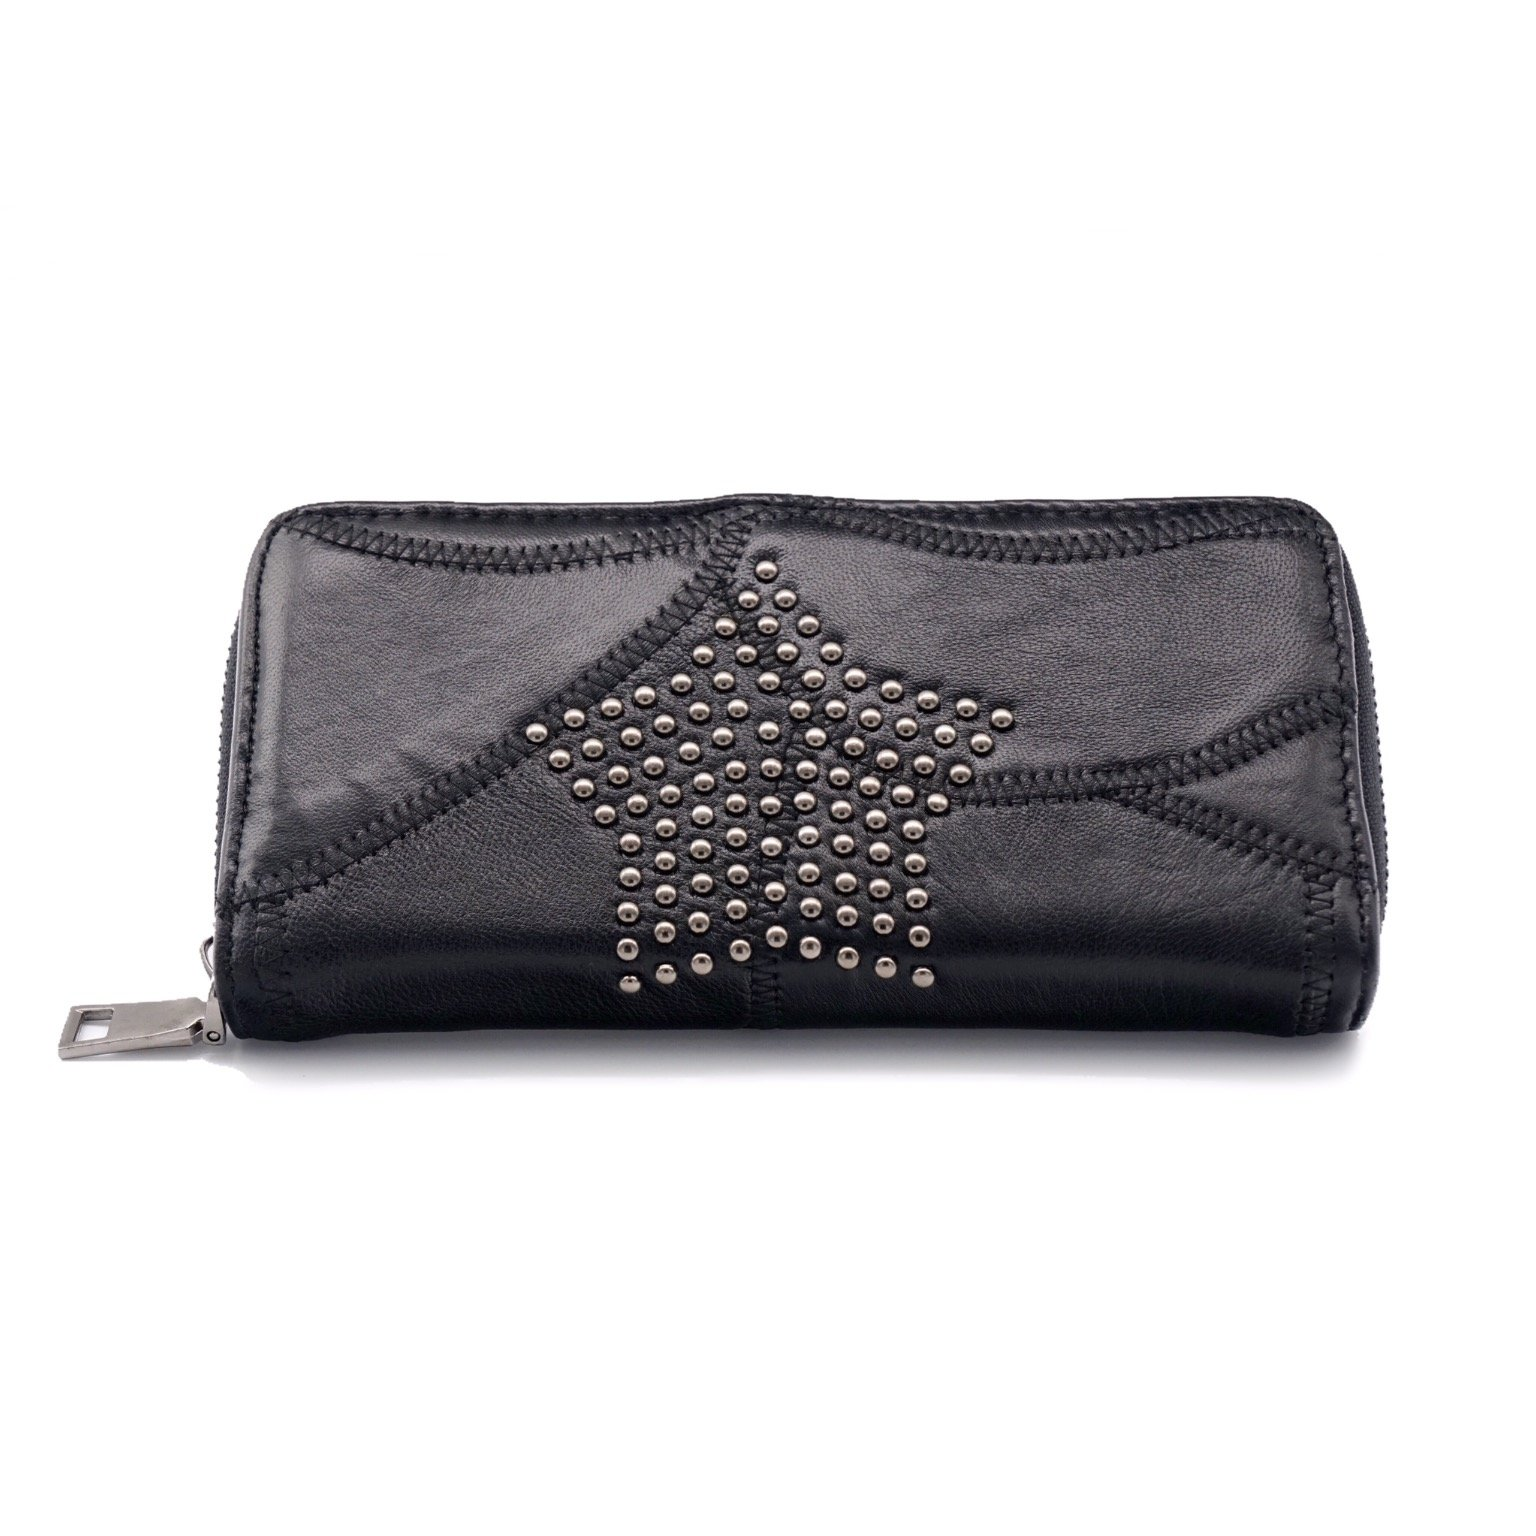 [CaserBay] Women Punk Rock Style Rivet Studded Spiked PU Leather Card Holder Long Wallet Purse (Style 3 Star)